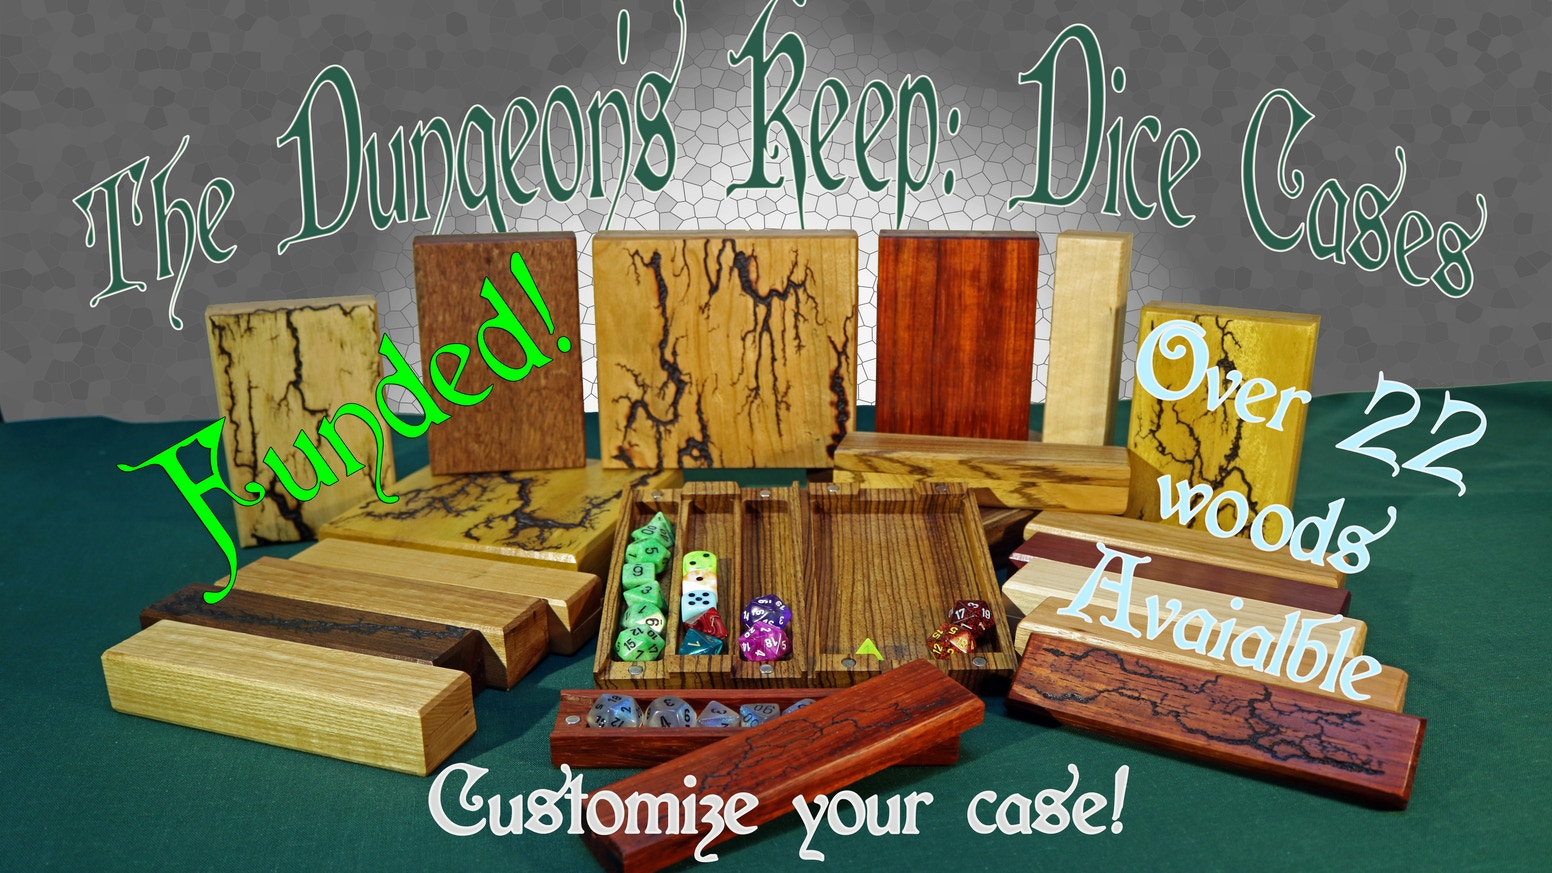 Our dice boxes with rolling trays are made from hardwood and exotic lumber. They are carefully crafted and have customization options.